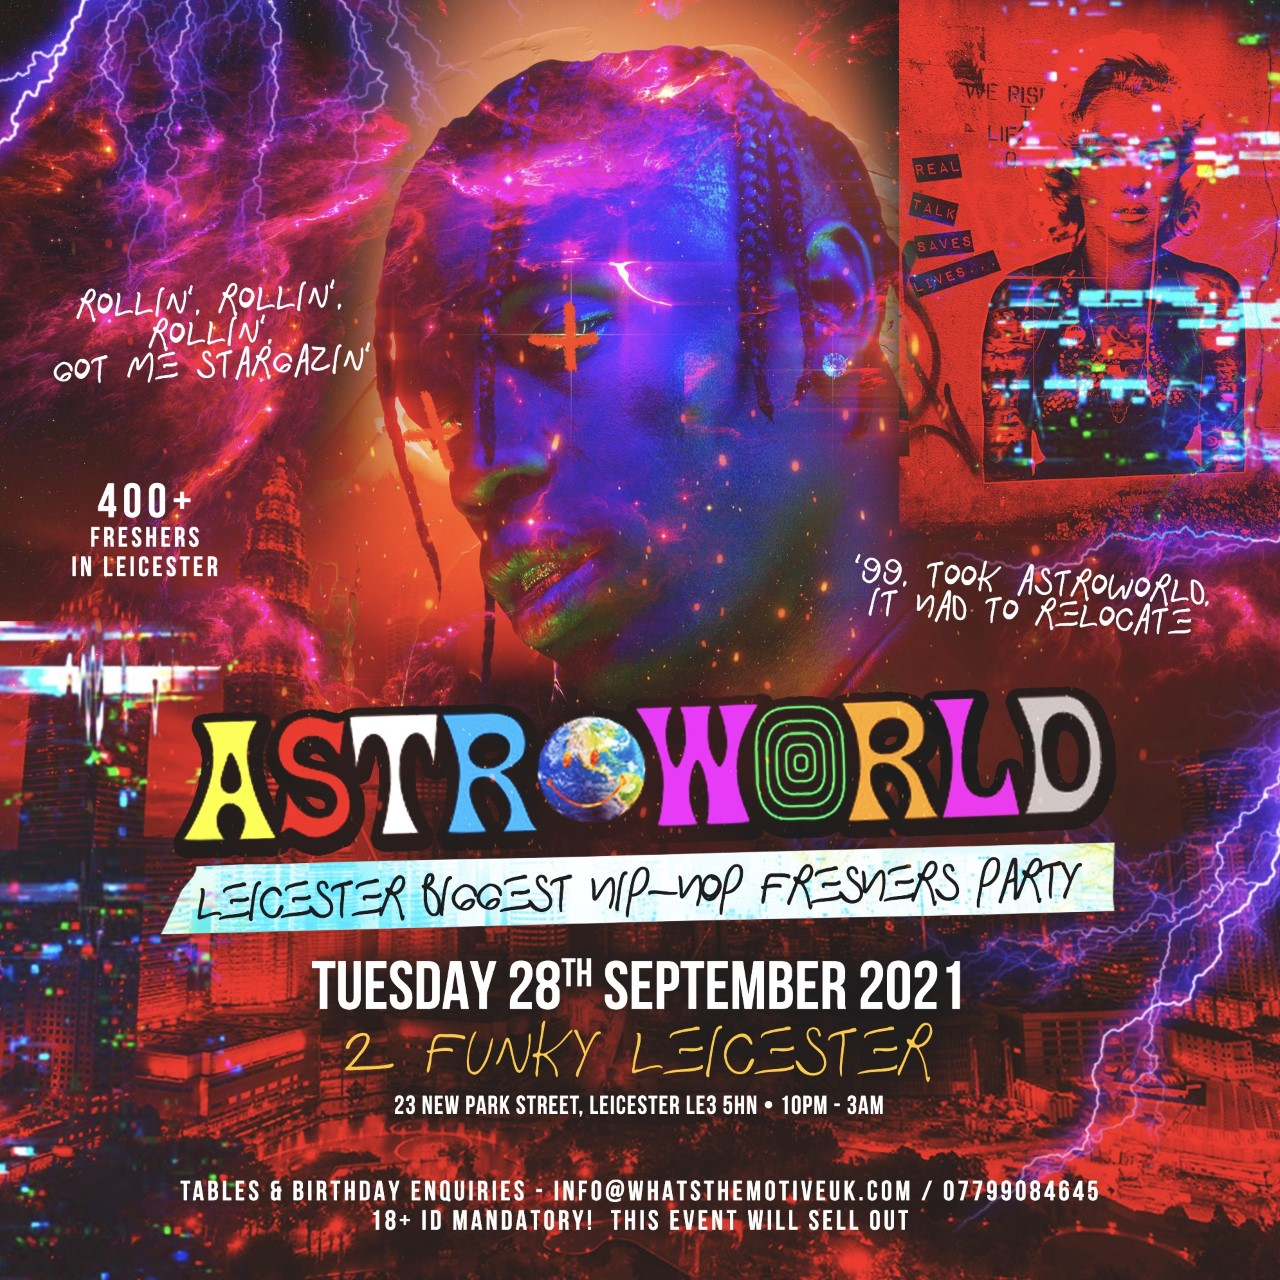 ASTROWORLD - Leicester's Biggest Hip-Hop Party